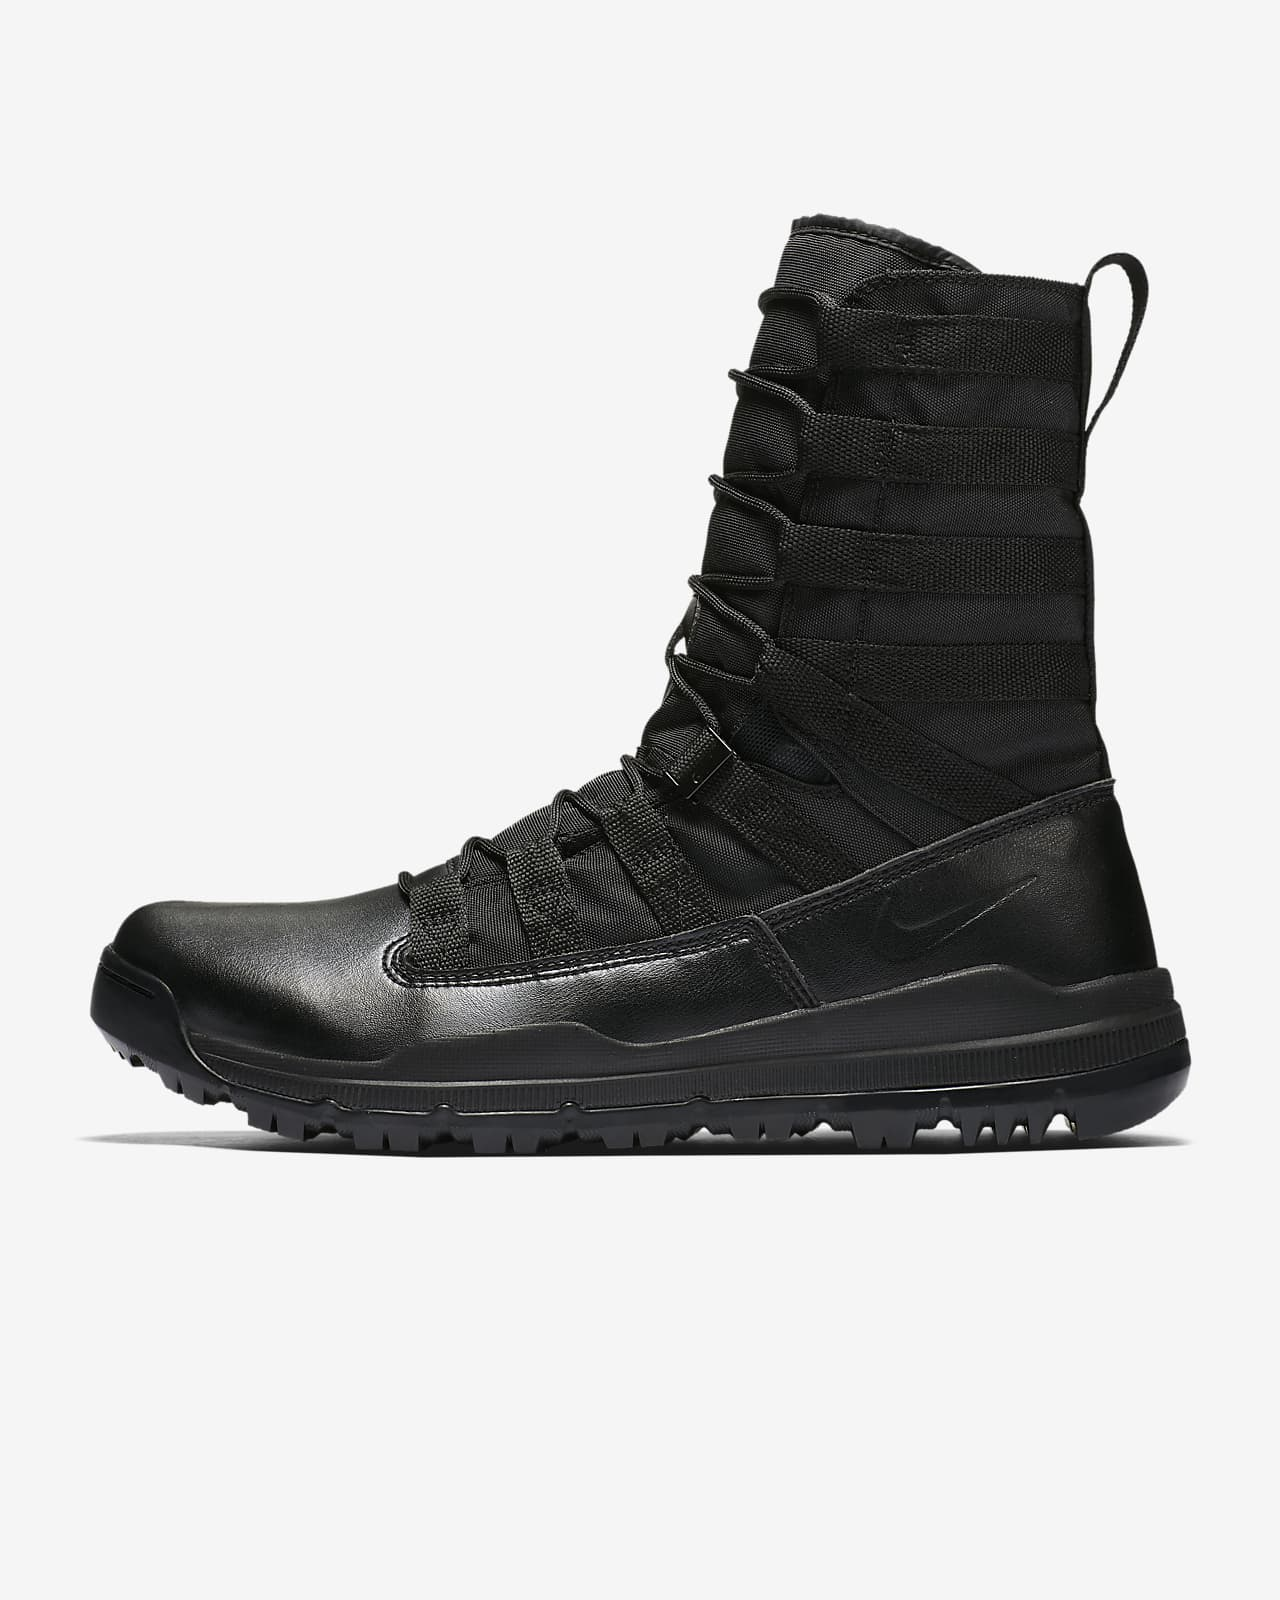 Nike SFB Gen 2 20cm (approx.) Tactical Boot